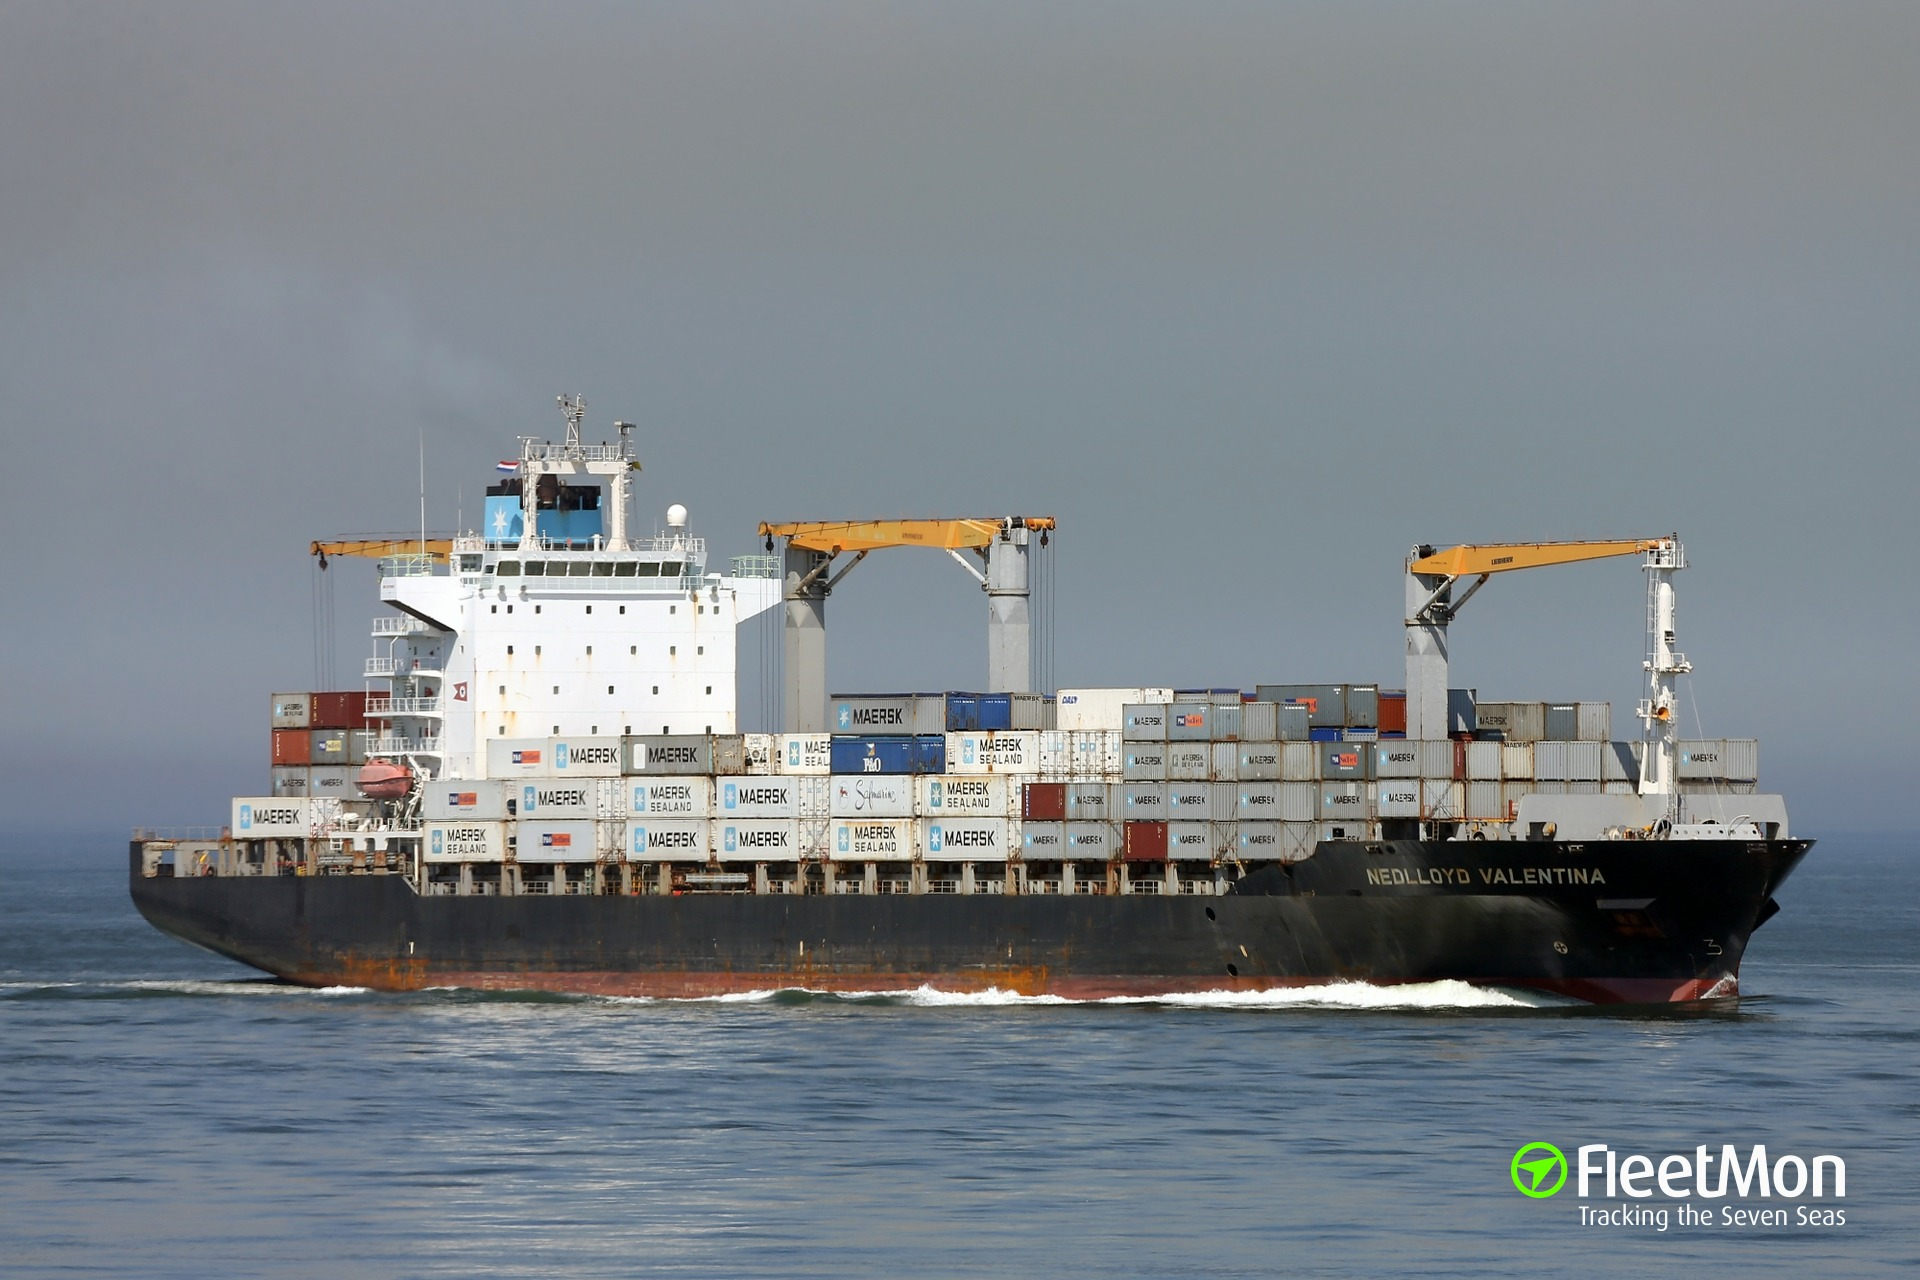 Stowaway with 50 kilo of cocaine arrested on board of CAP BEATRICE